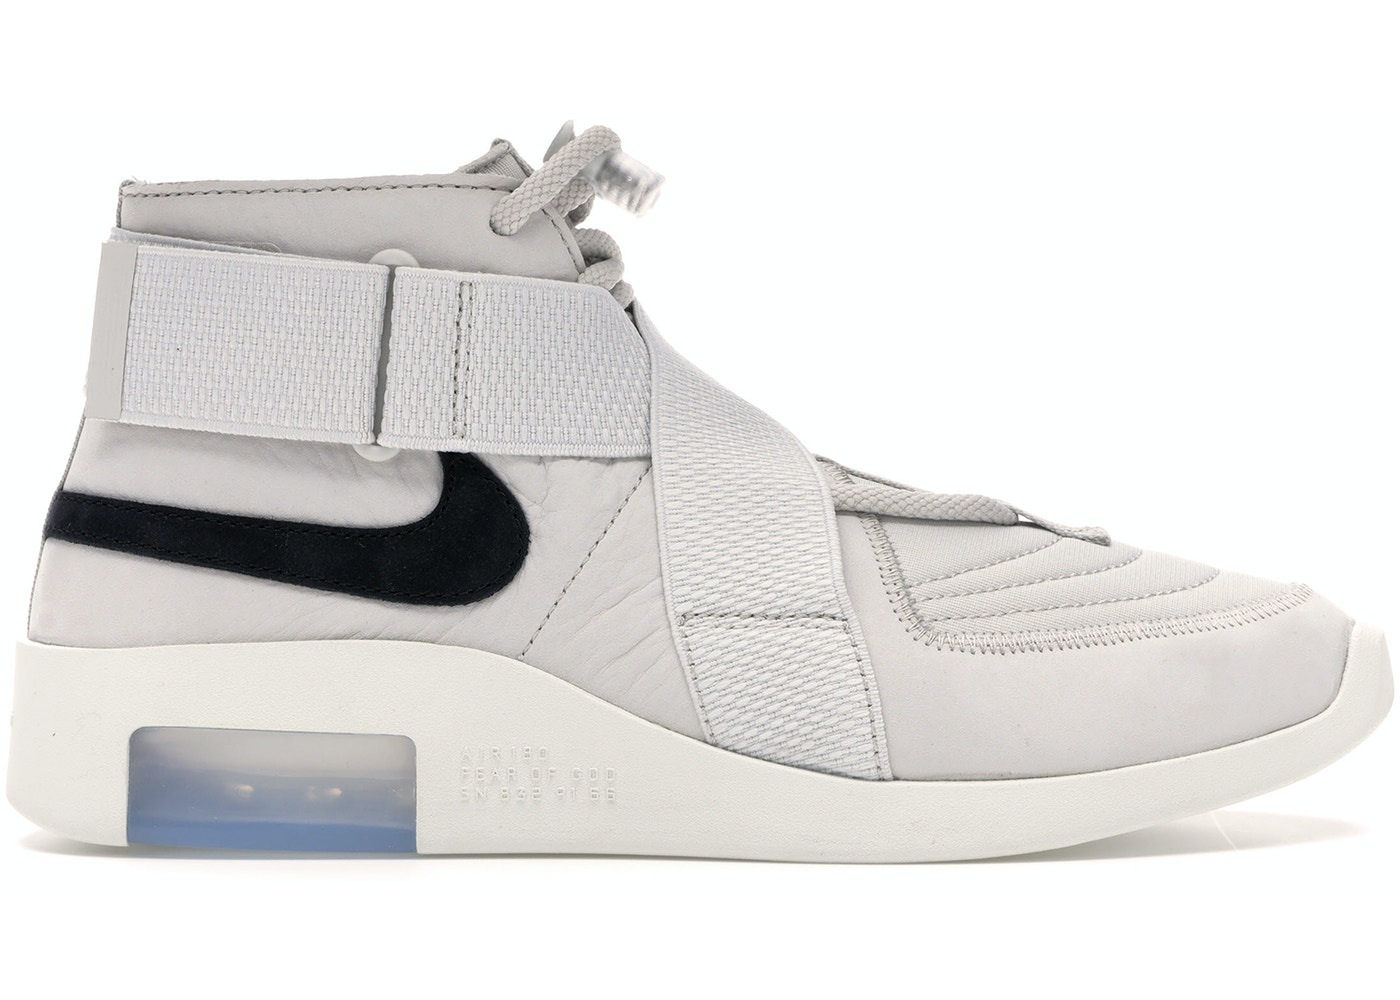 newest d53c0 7c8c7 Air Fear of God Raid Light Bone - AT8087-001